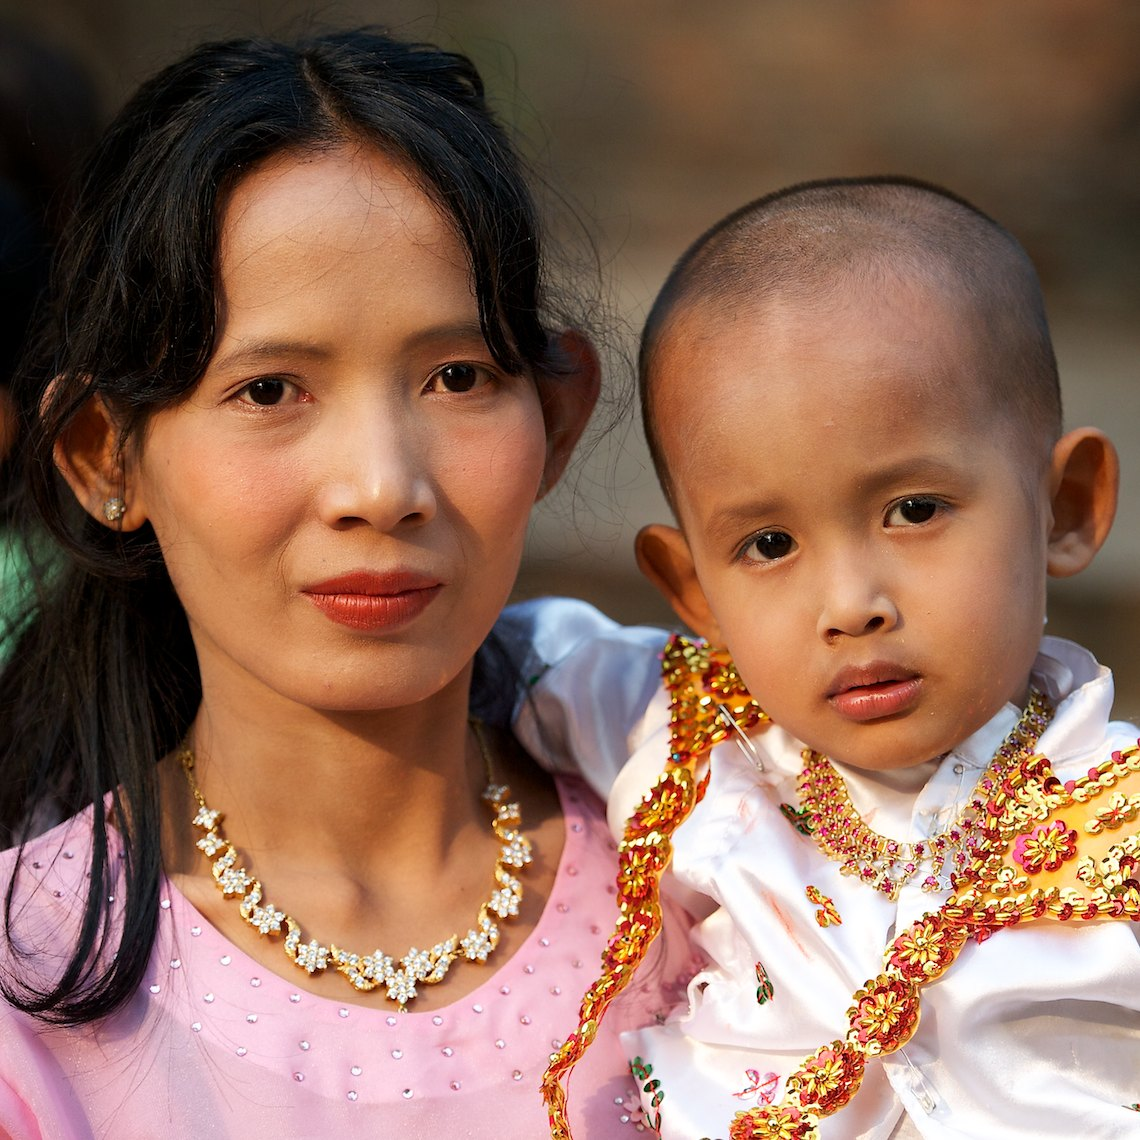 Burma Bagan portrait mother and child